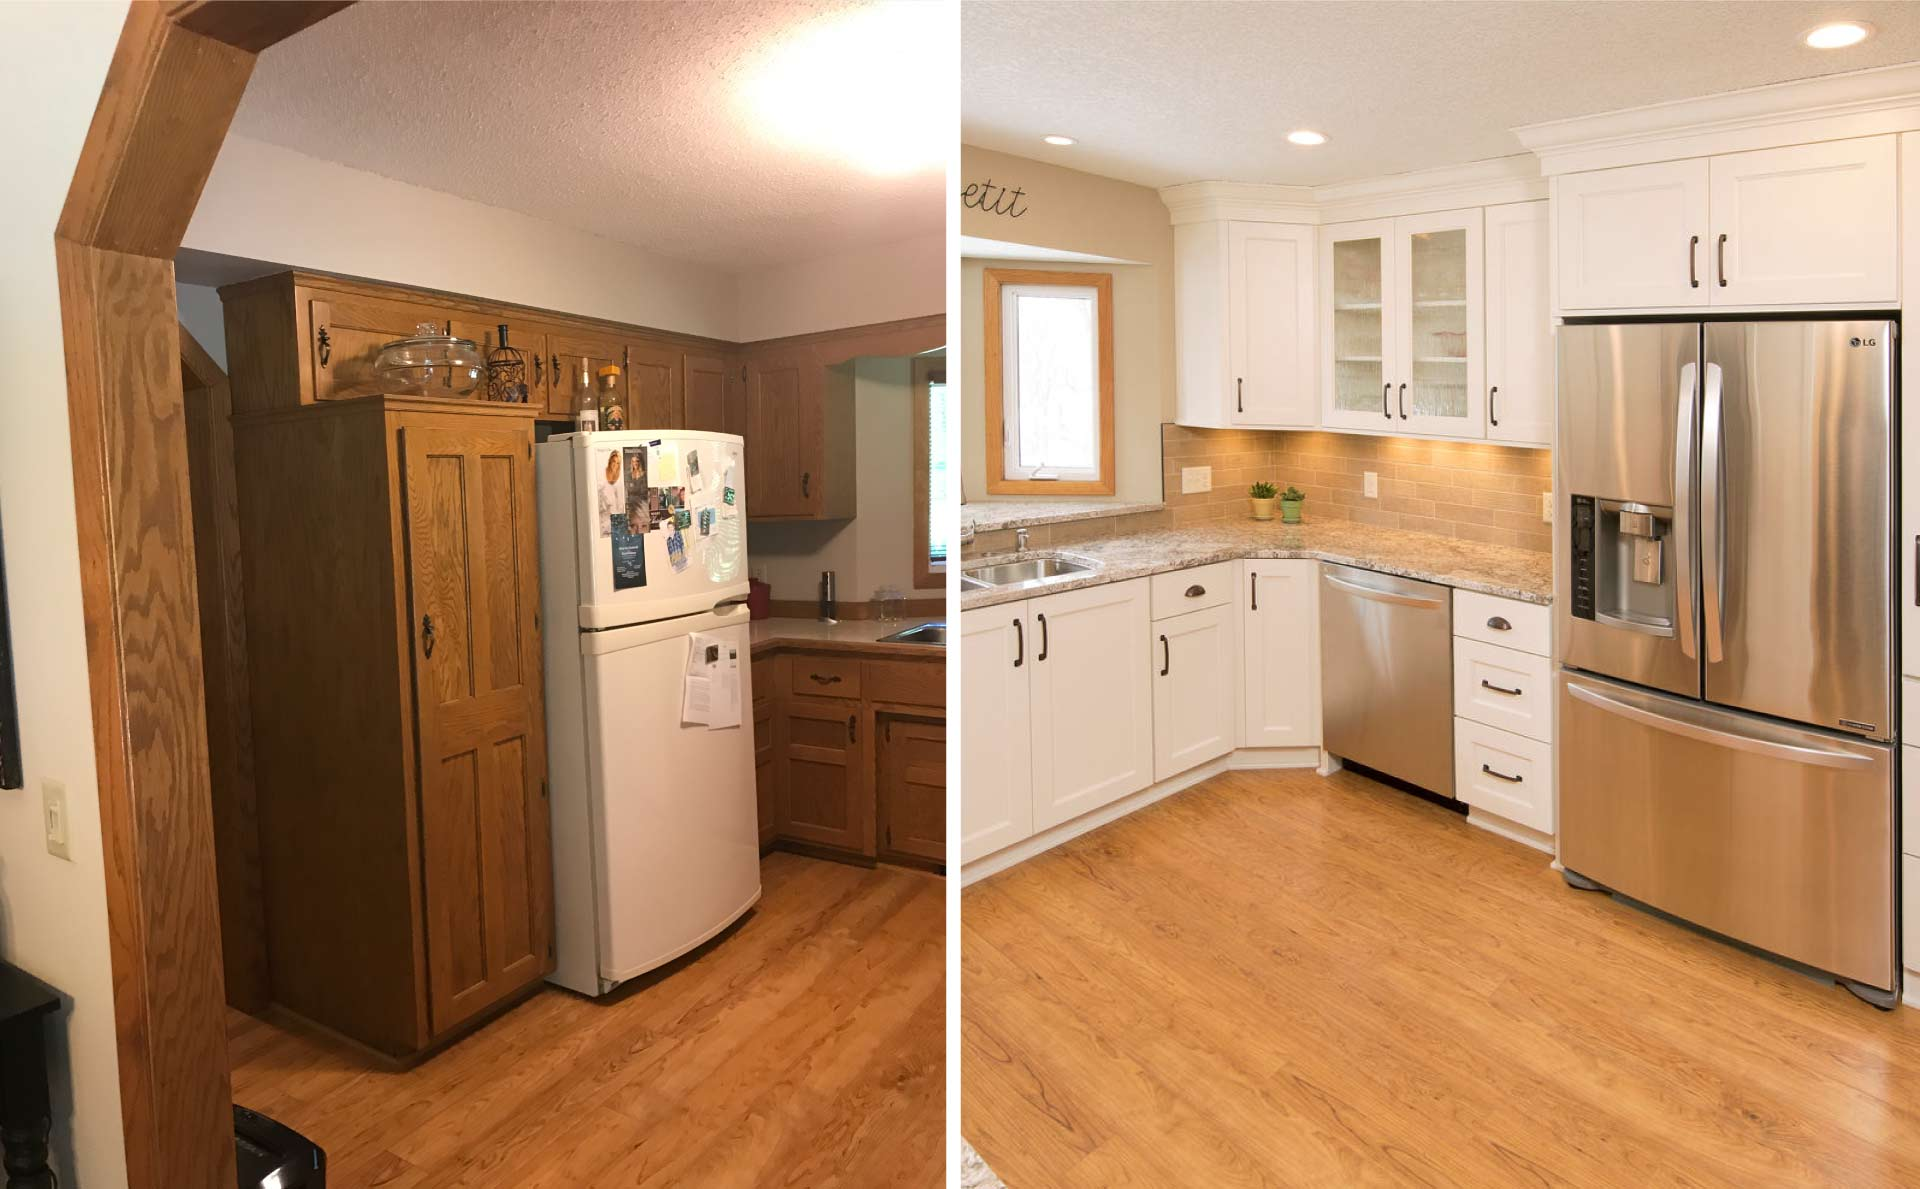 Updating Oak Cabinets Doors Floors Trim